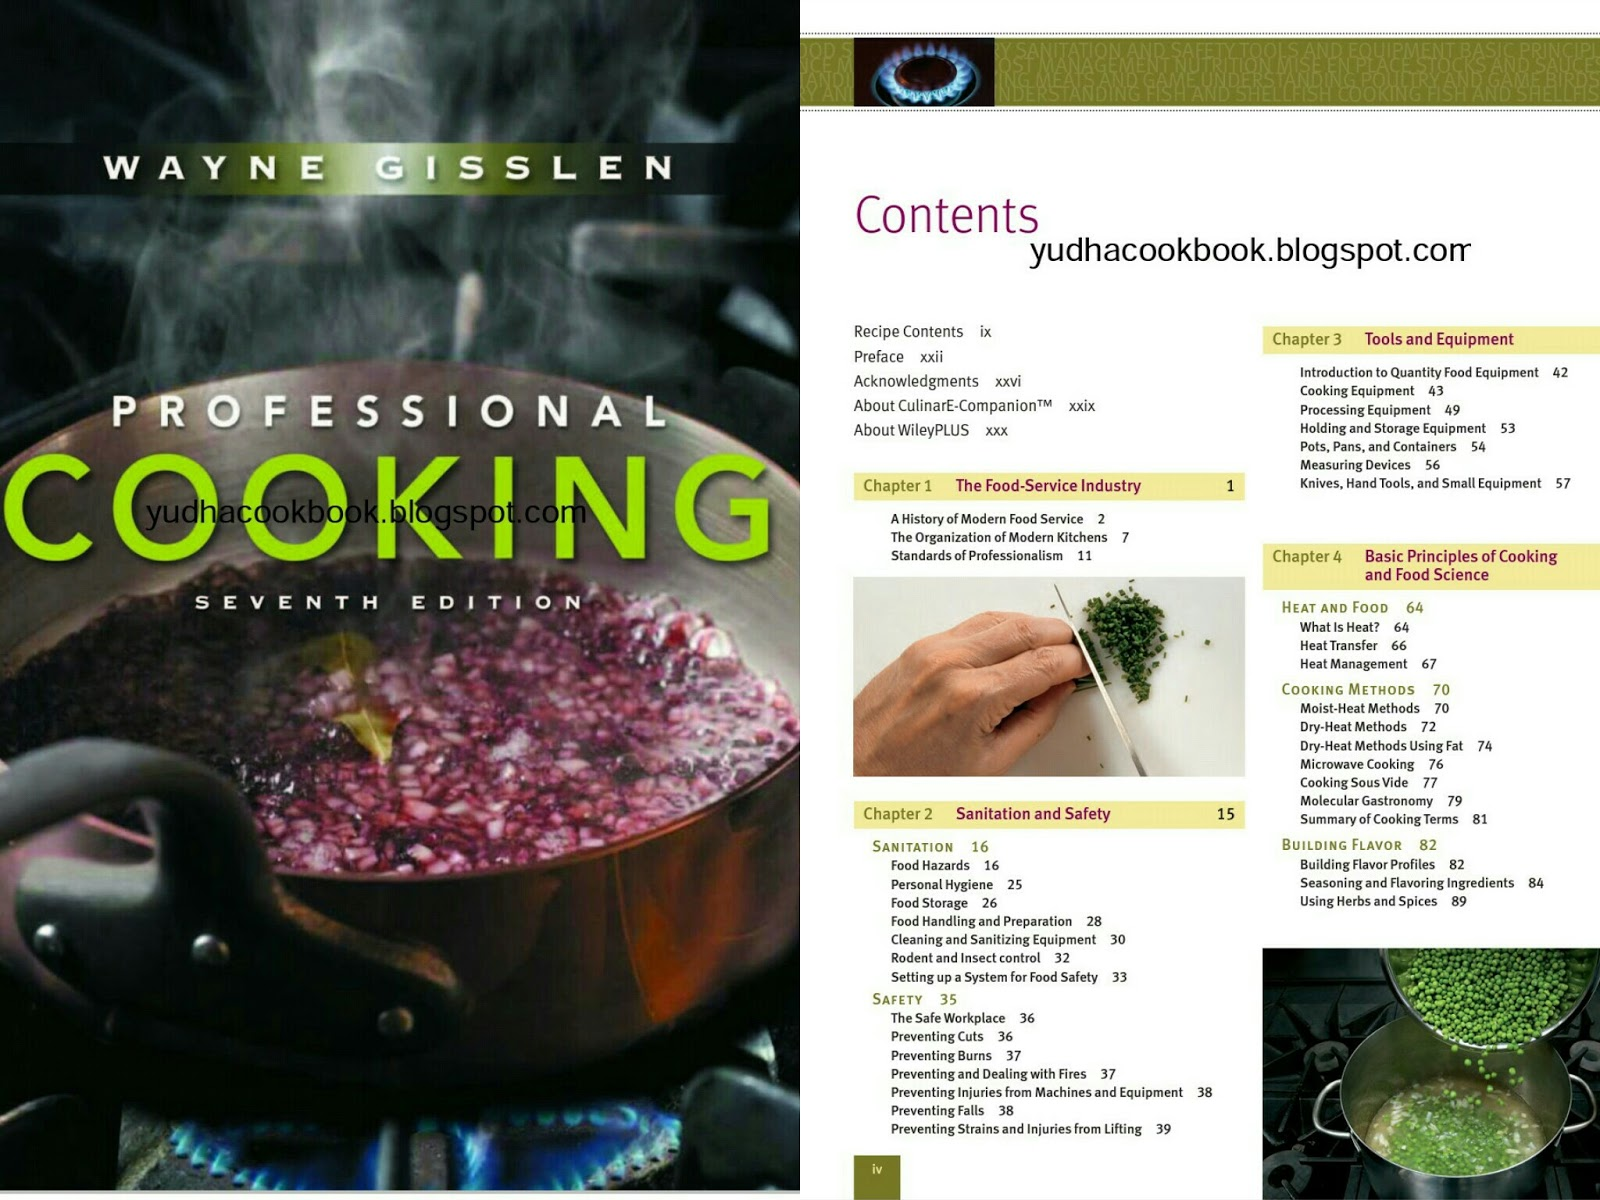 Professional cooking 7th edition yudhacookbook professional cooking 7th edition forumfinder Images